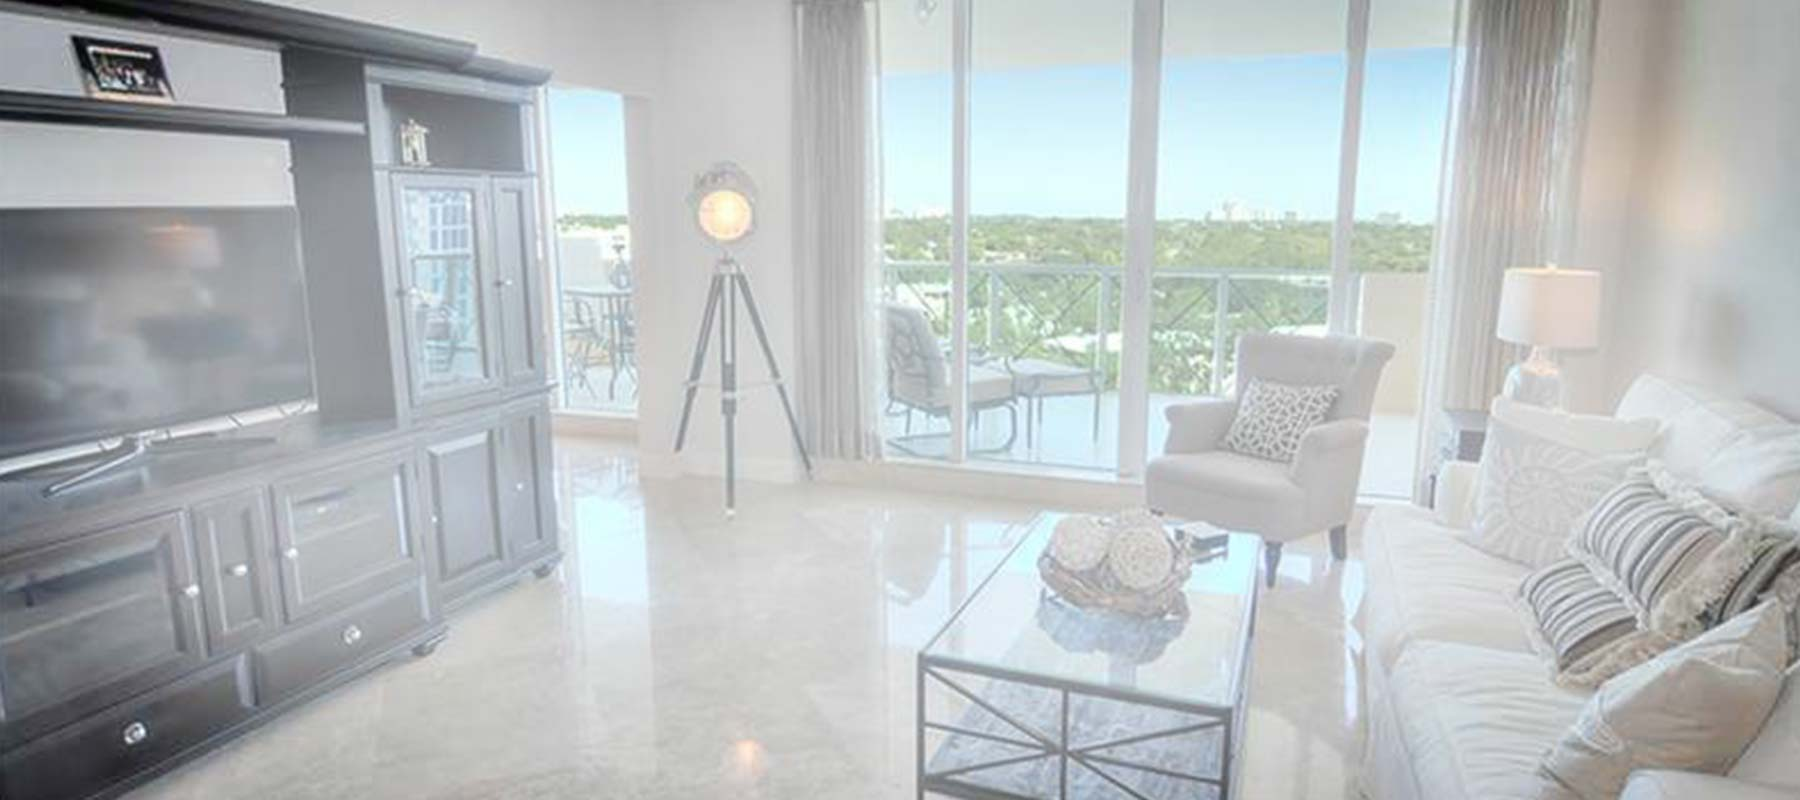 Deerfield Beach condo painting